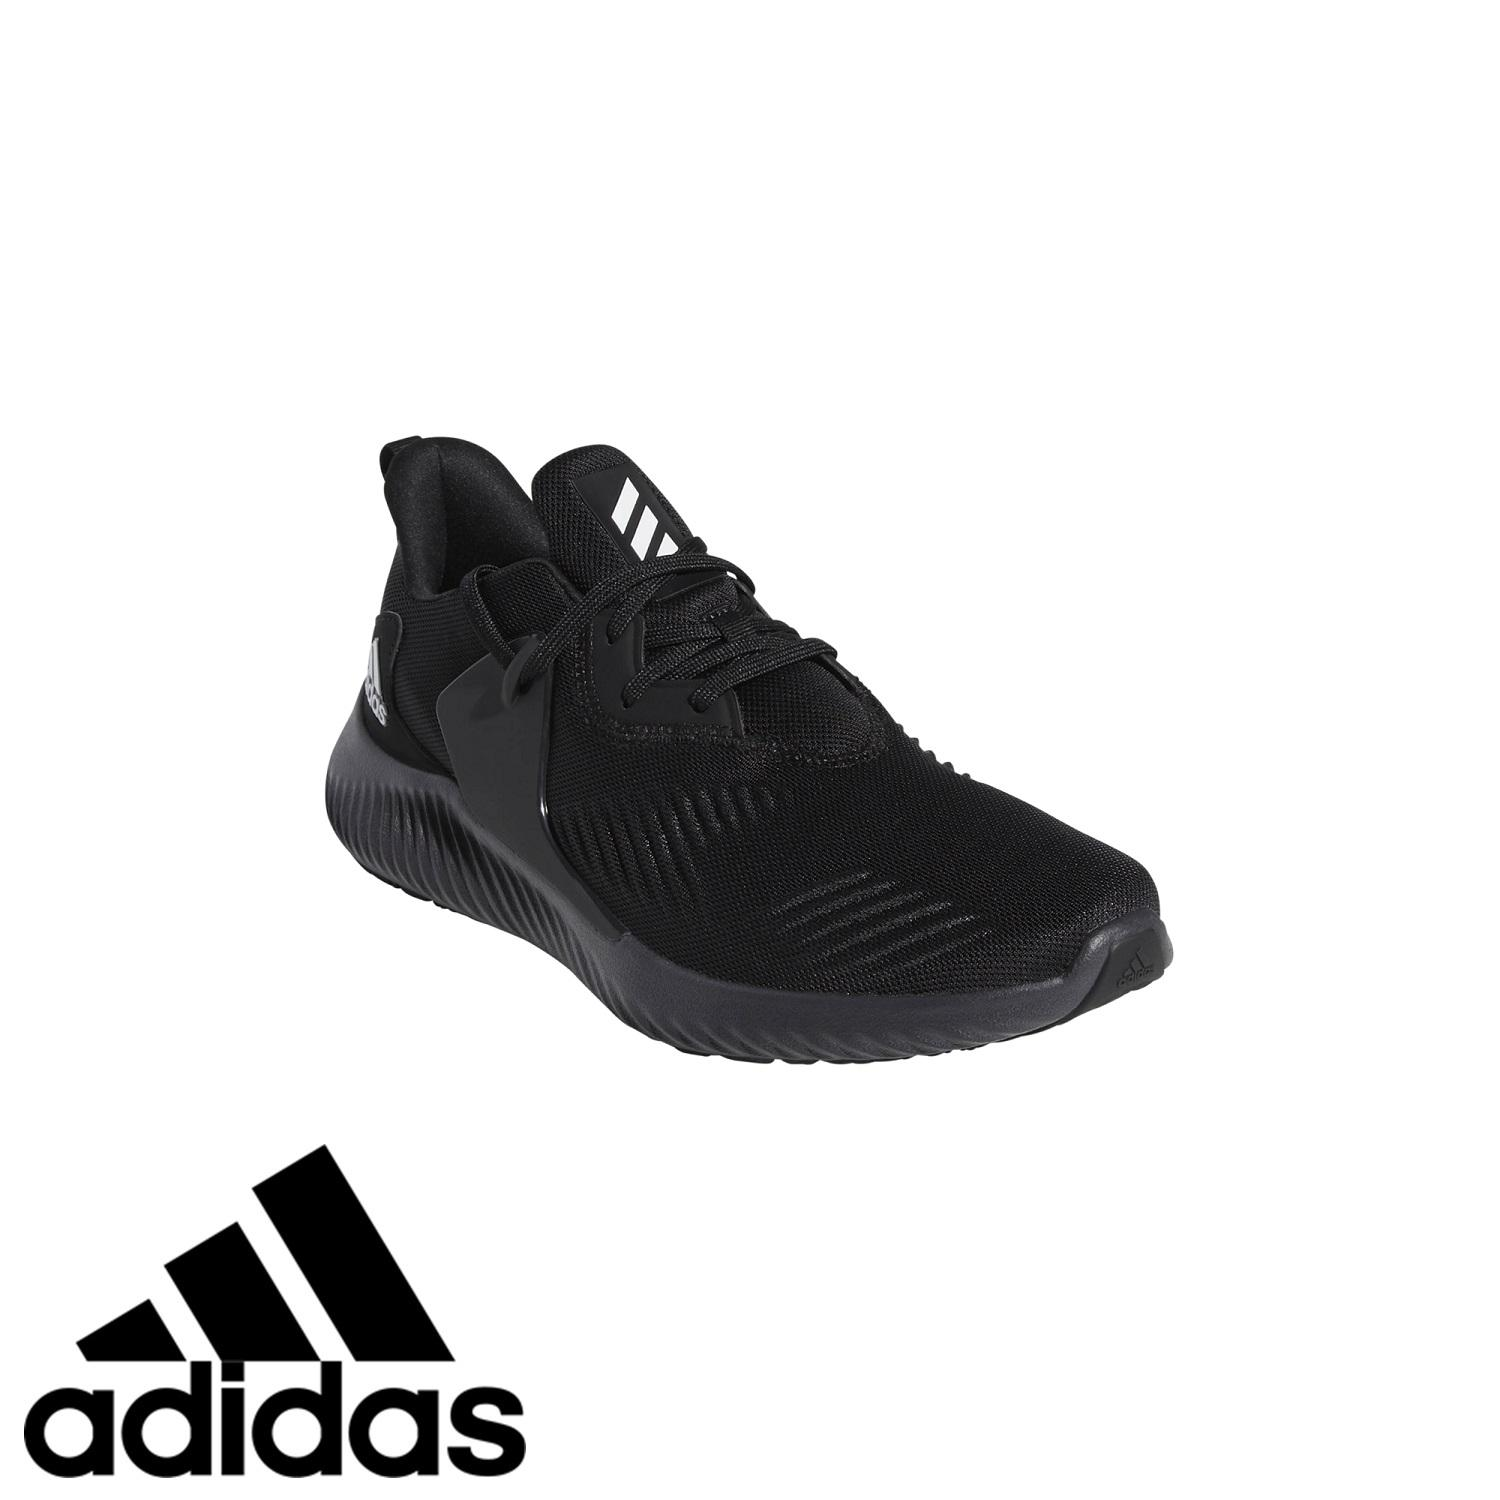 0bc63b9af Adidas Sports Shoes Philippines - Adidas Sports Clothing for sale ...